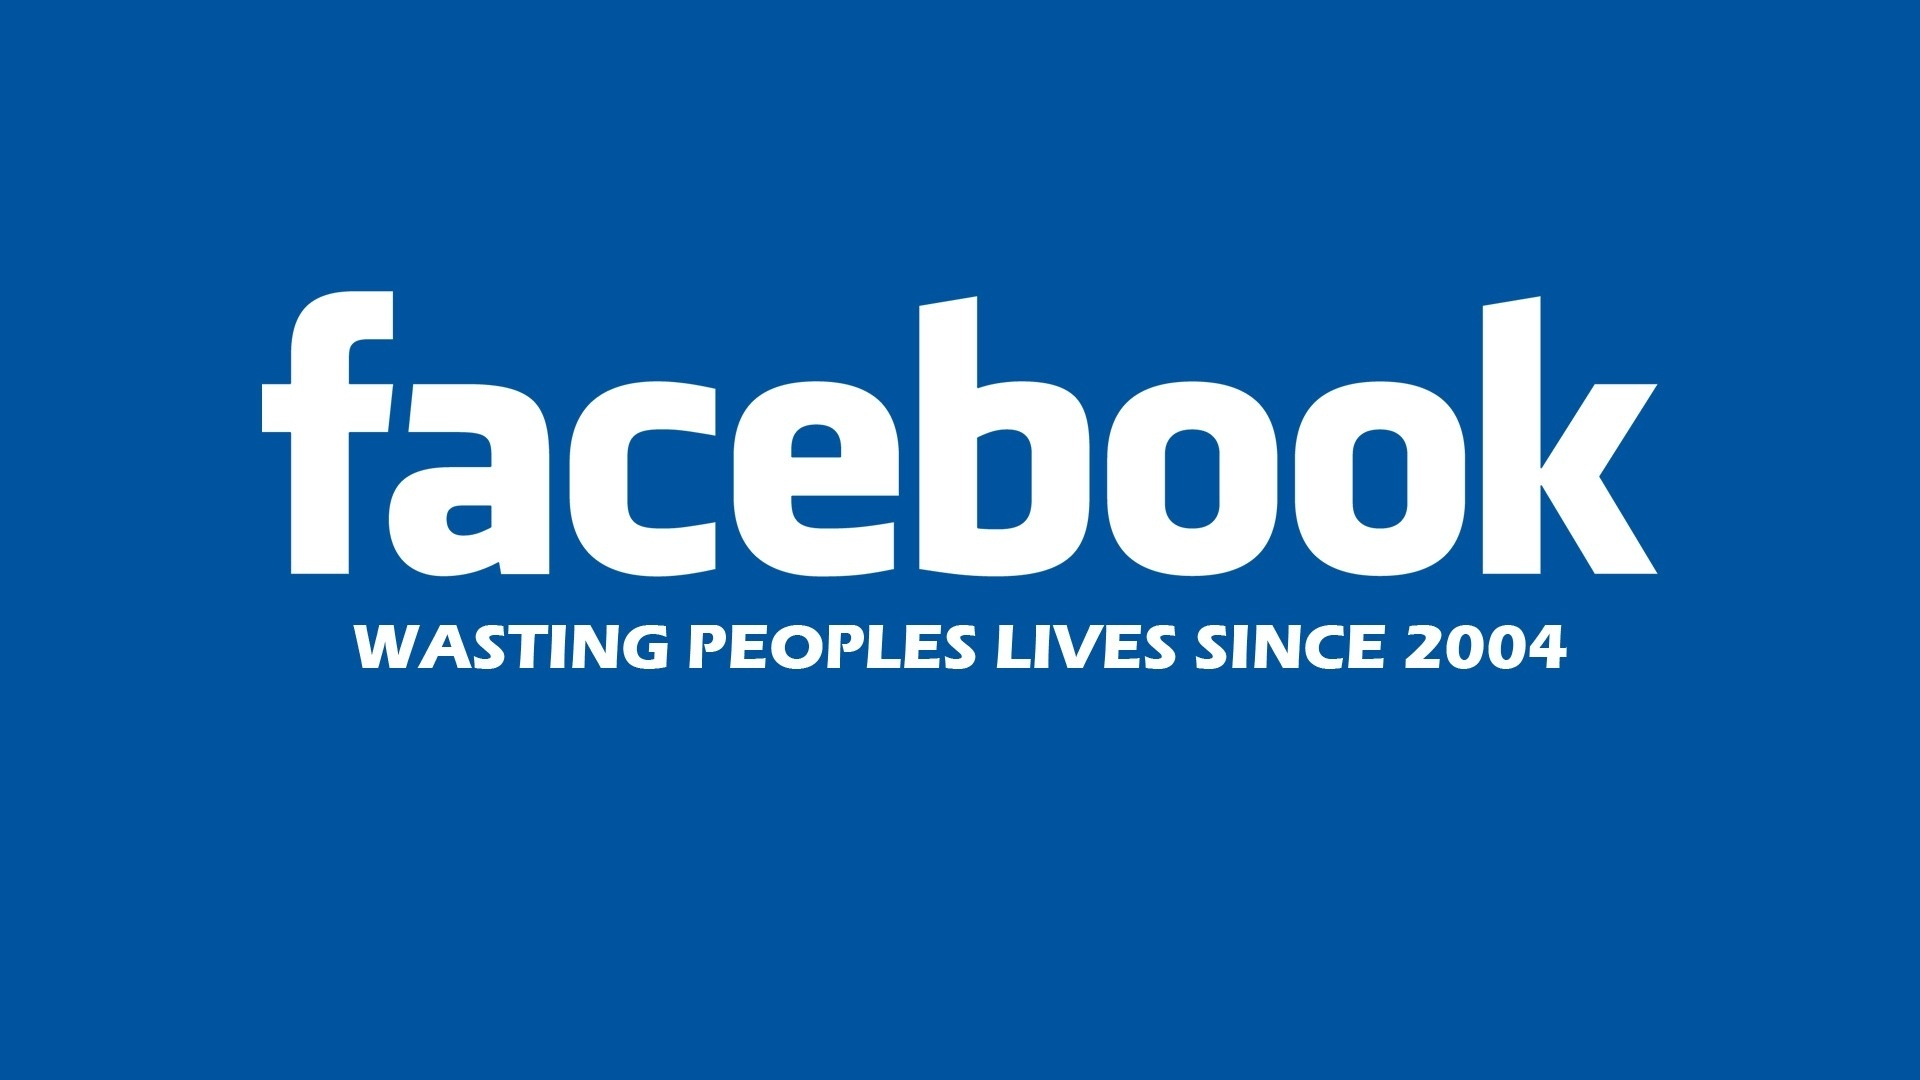 facebook wasting time wallpapers 1920x1080 122527